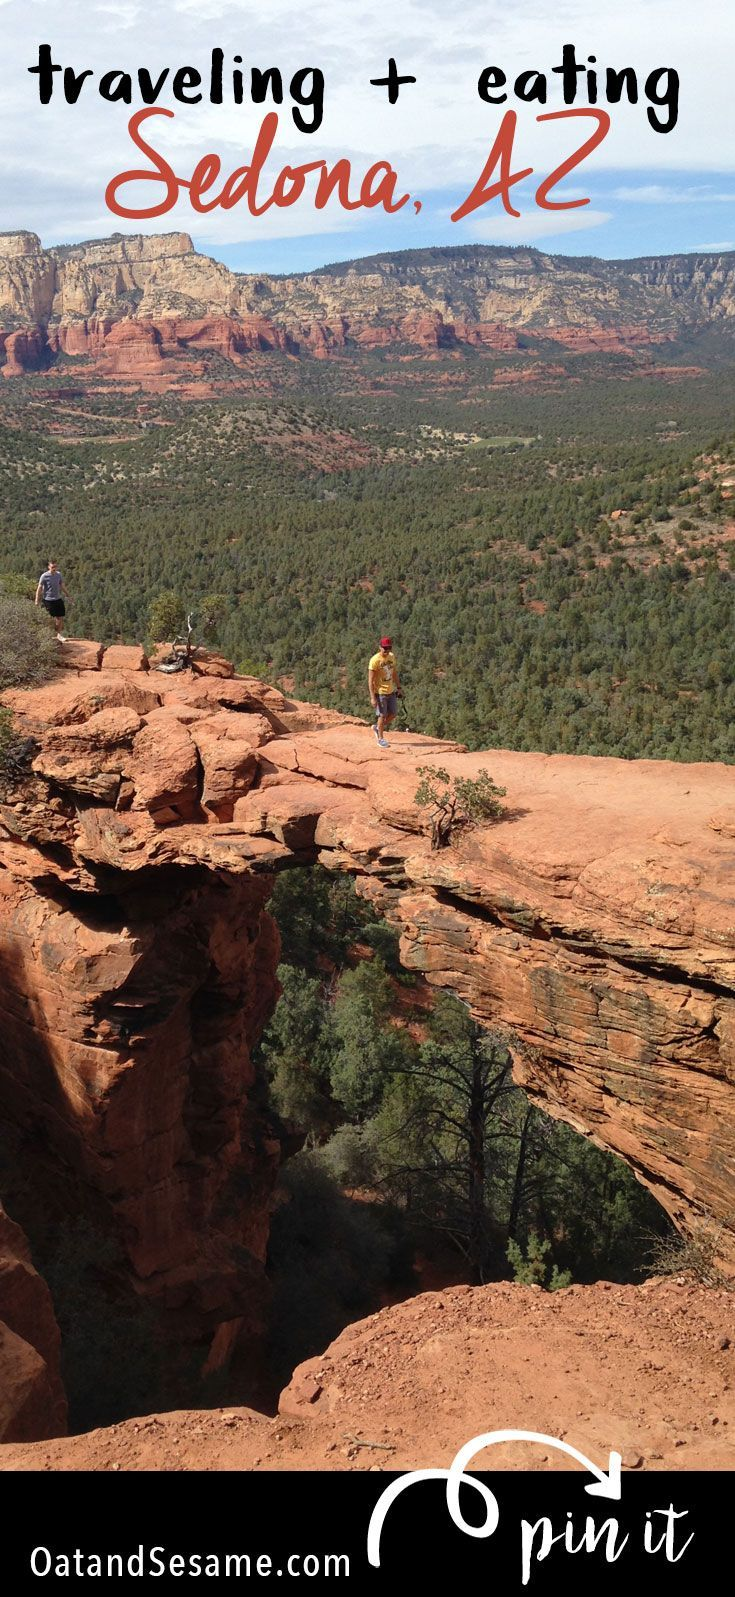 Taking a trip to Sedona, Arizona? Here's a snapshot of some of our favorite hikes and places to eat. A list that's sure to grow as we spend more and more time hiking the endless number of trails that exist here. Almost every trail guarantees an amazing view of the many rock formations that extend in every direction. | #ARIZONA | #SEDONA | #HIKING | #TRAVEL at OatandSesame.com